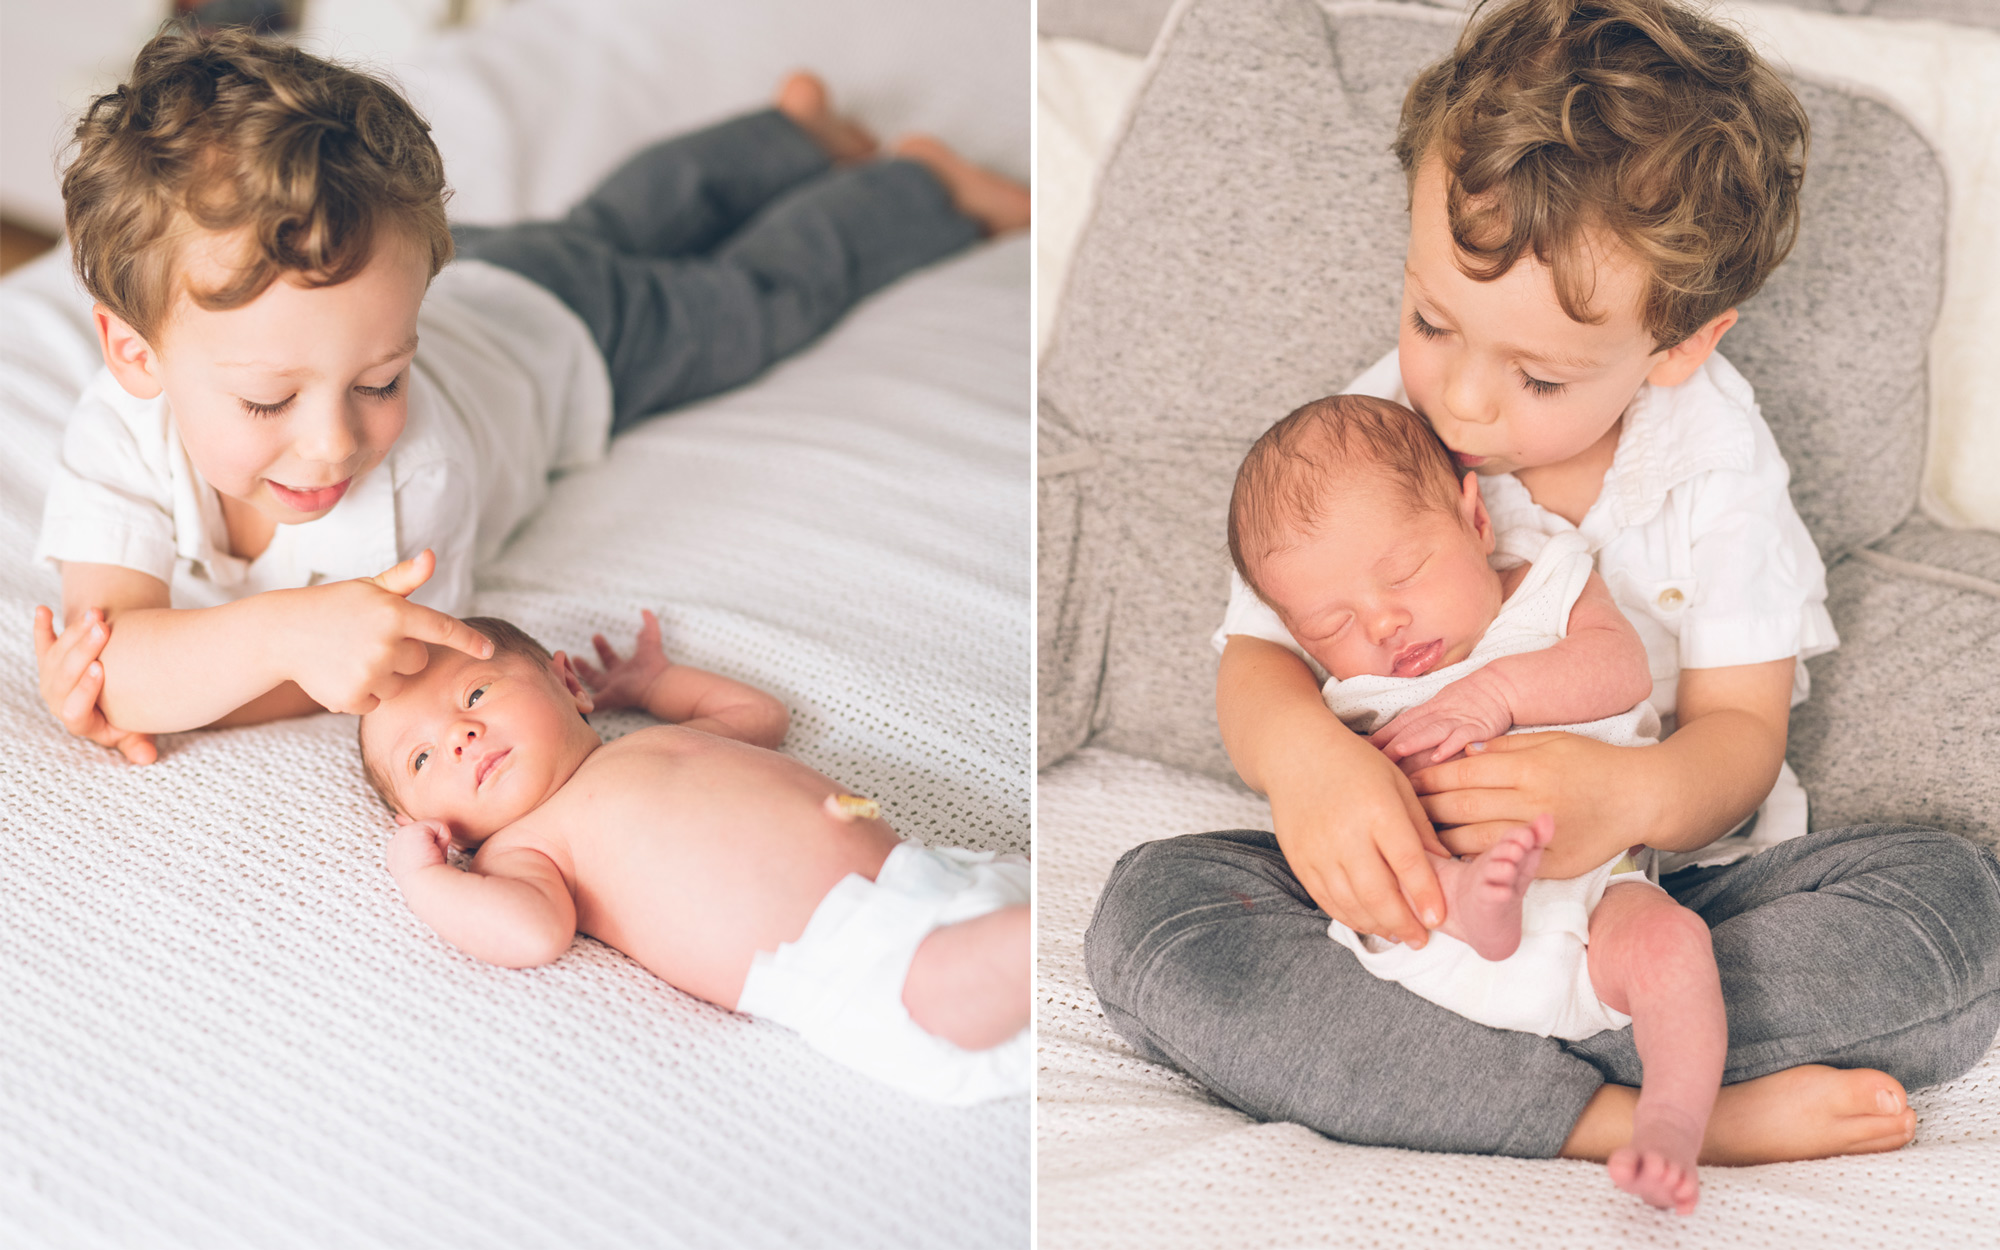 baby-brother-being-loving-with-his-newborn-baby-sister.jpg